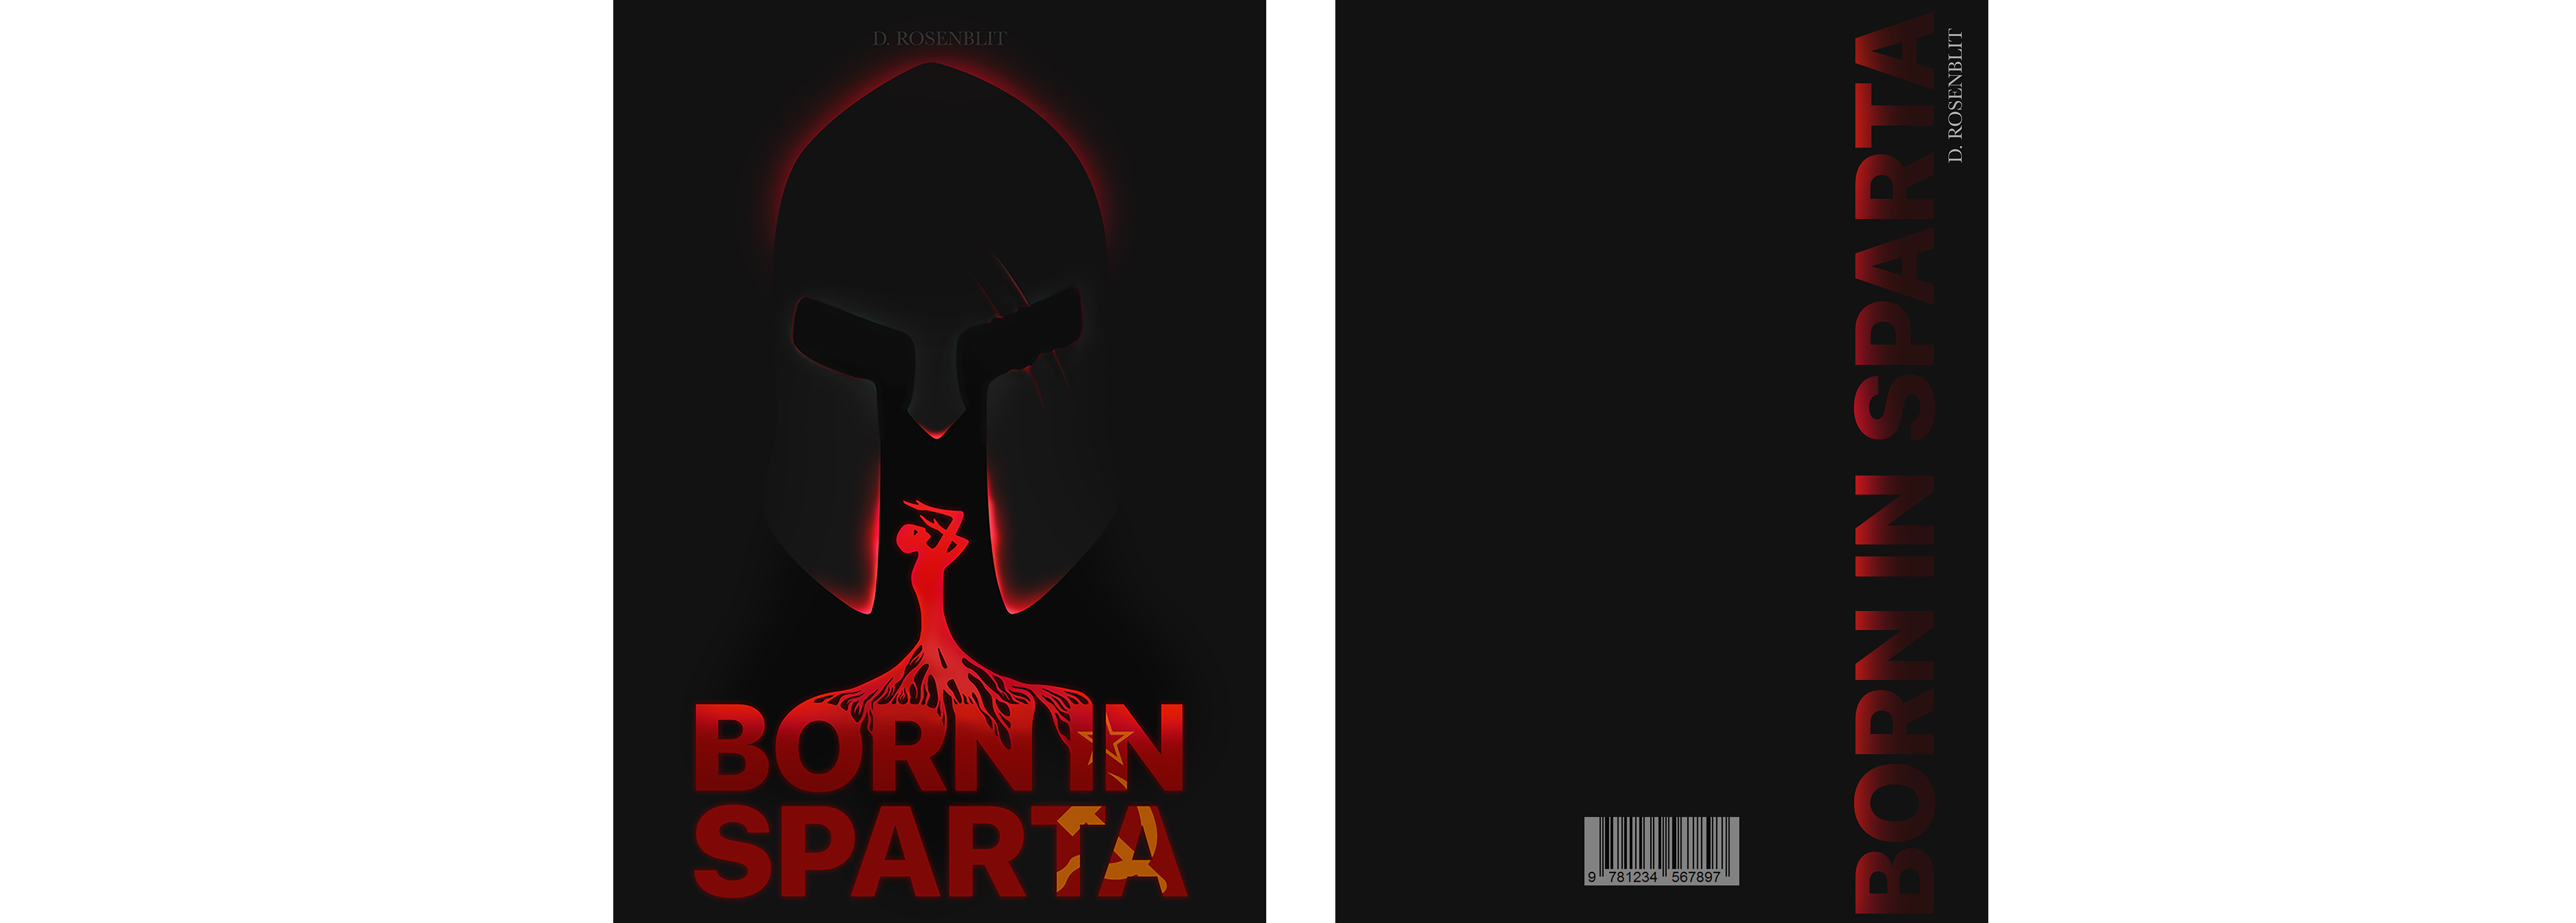 Born in Sparta cover preview2